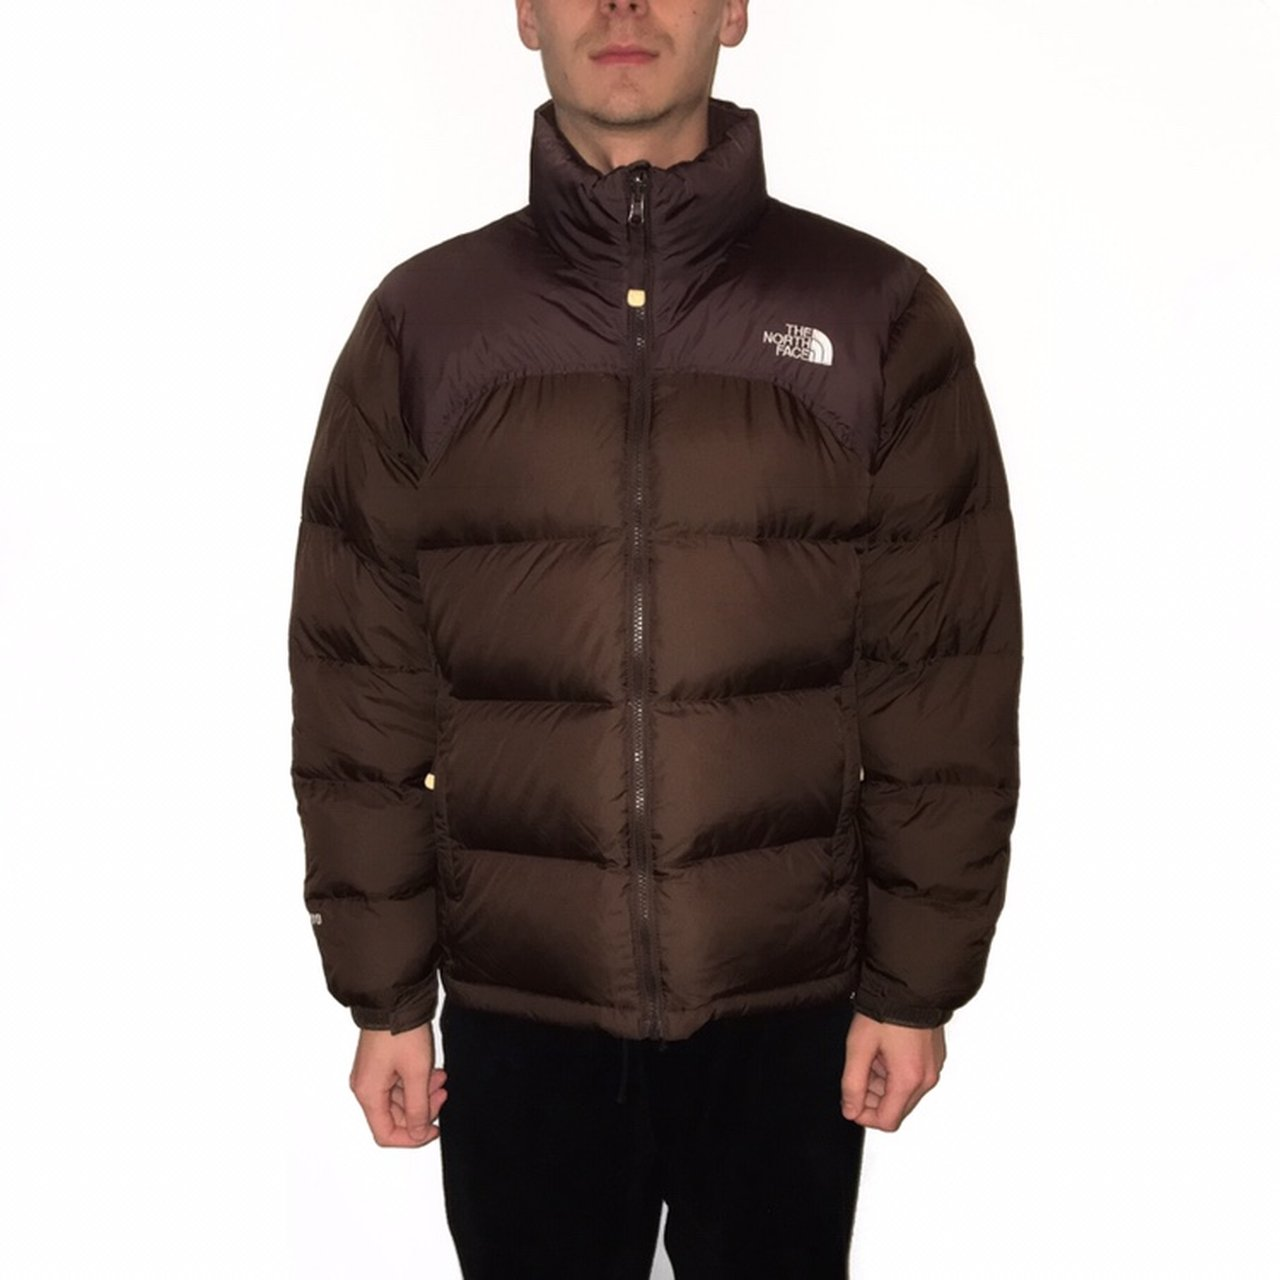 The North Face Brown 700 Down Filled Nuptse Puffer Jacket 🍫 - Depop d46aacc28